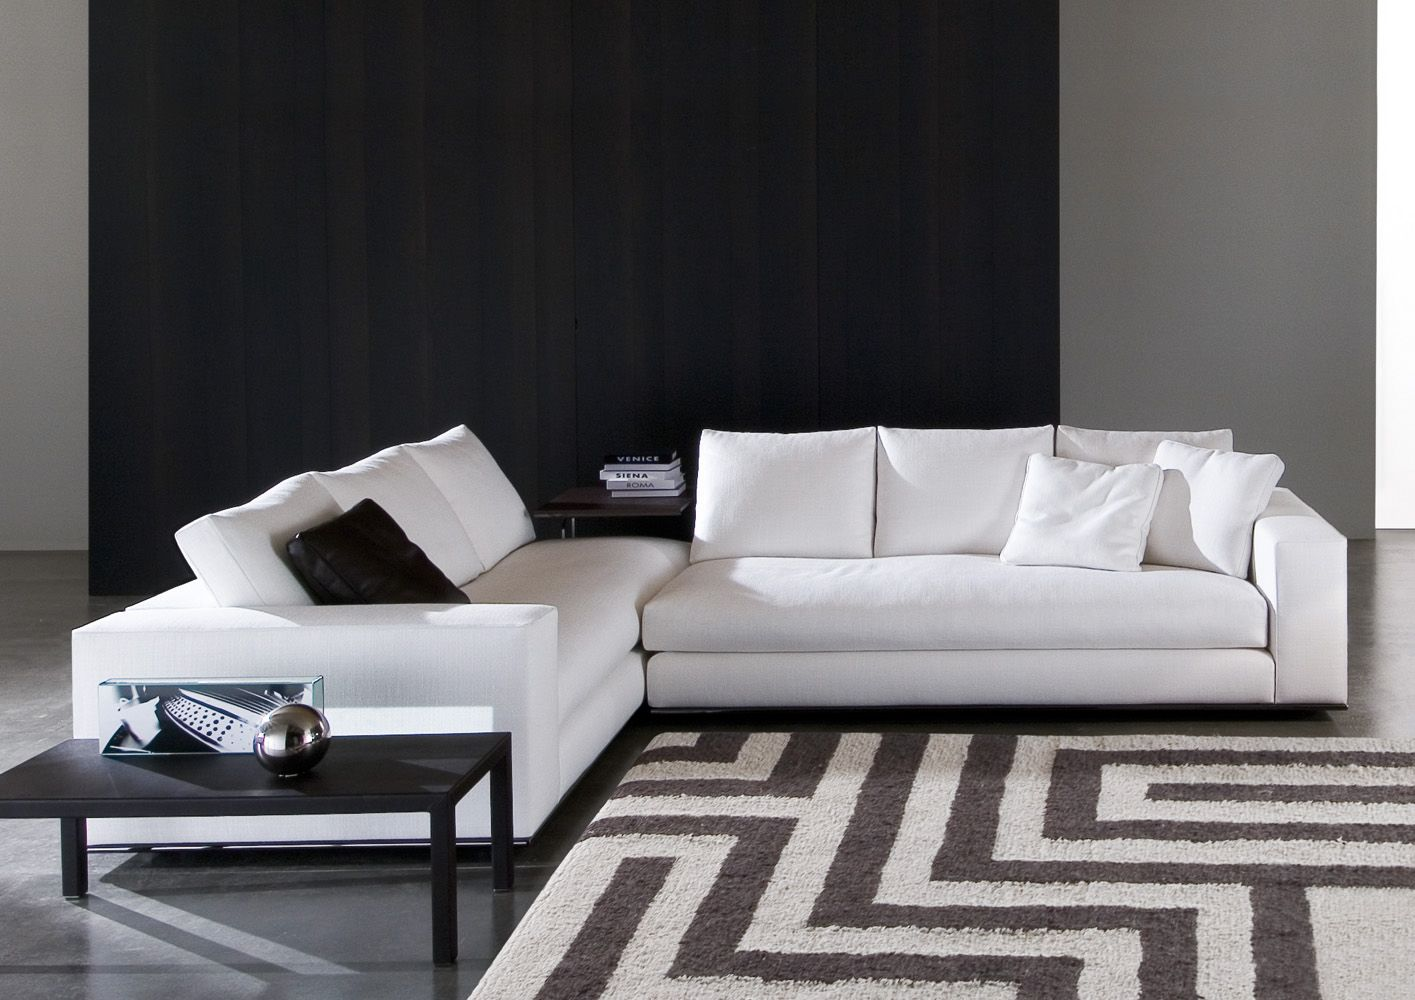 Sensational Minotti Sectional For The Home Hamilton Sofa Sofa Caraccident5 Cool Chair Designs And Ideas Caraccident5Info